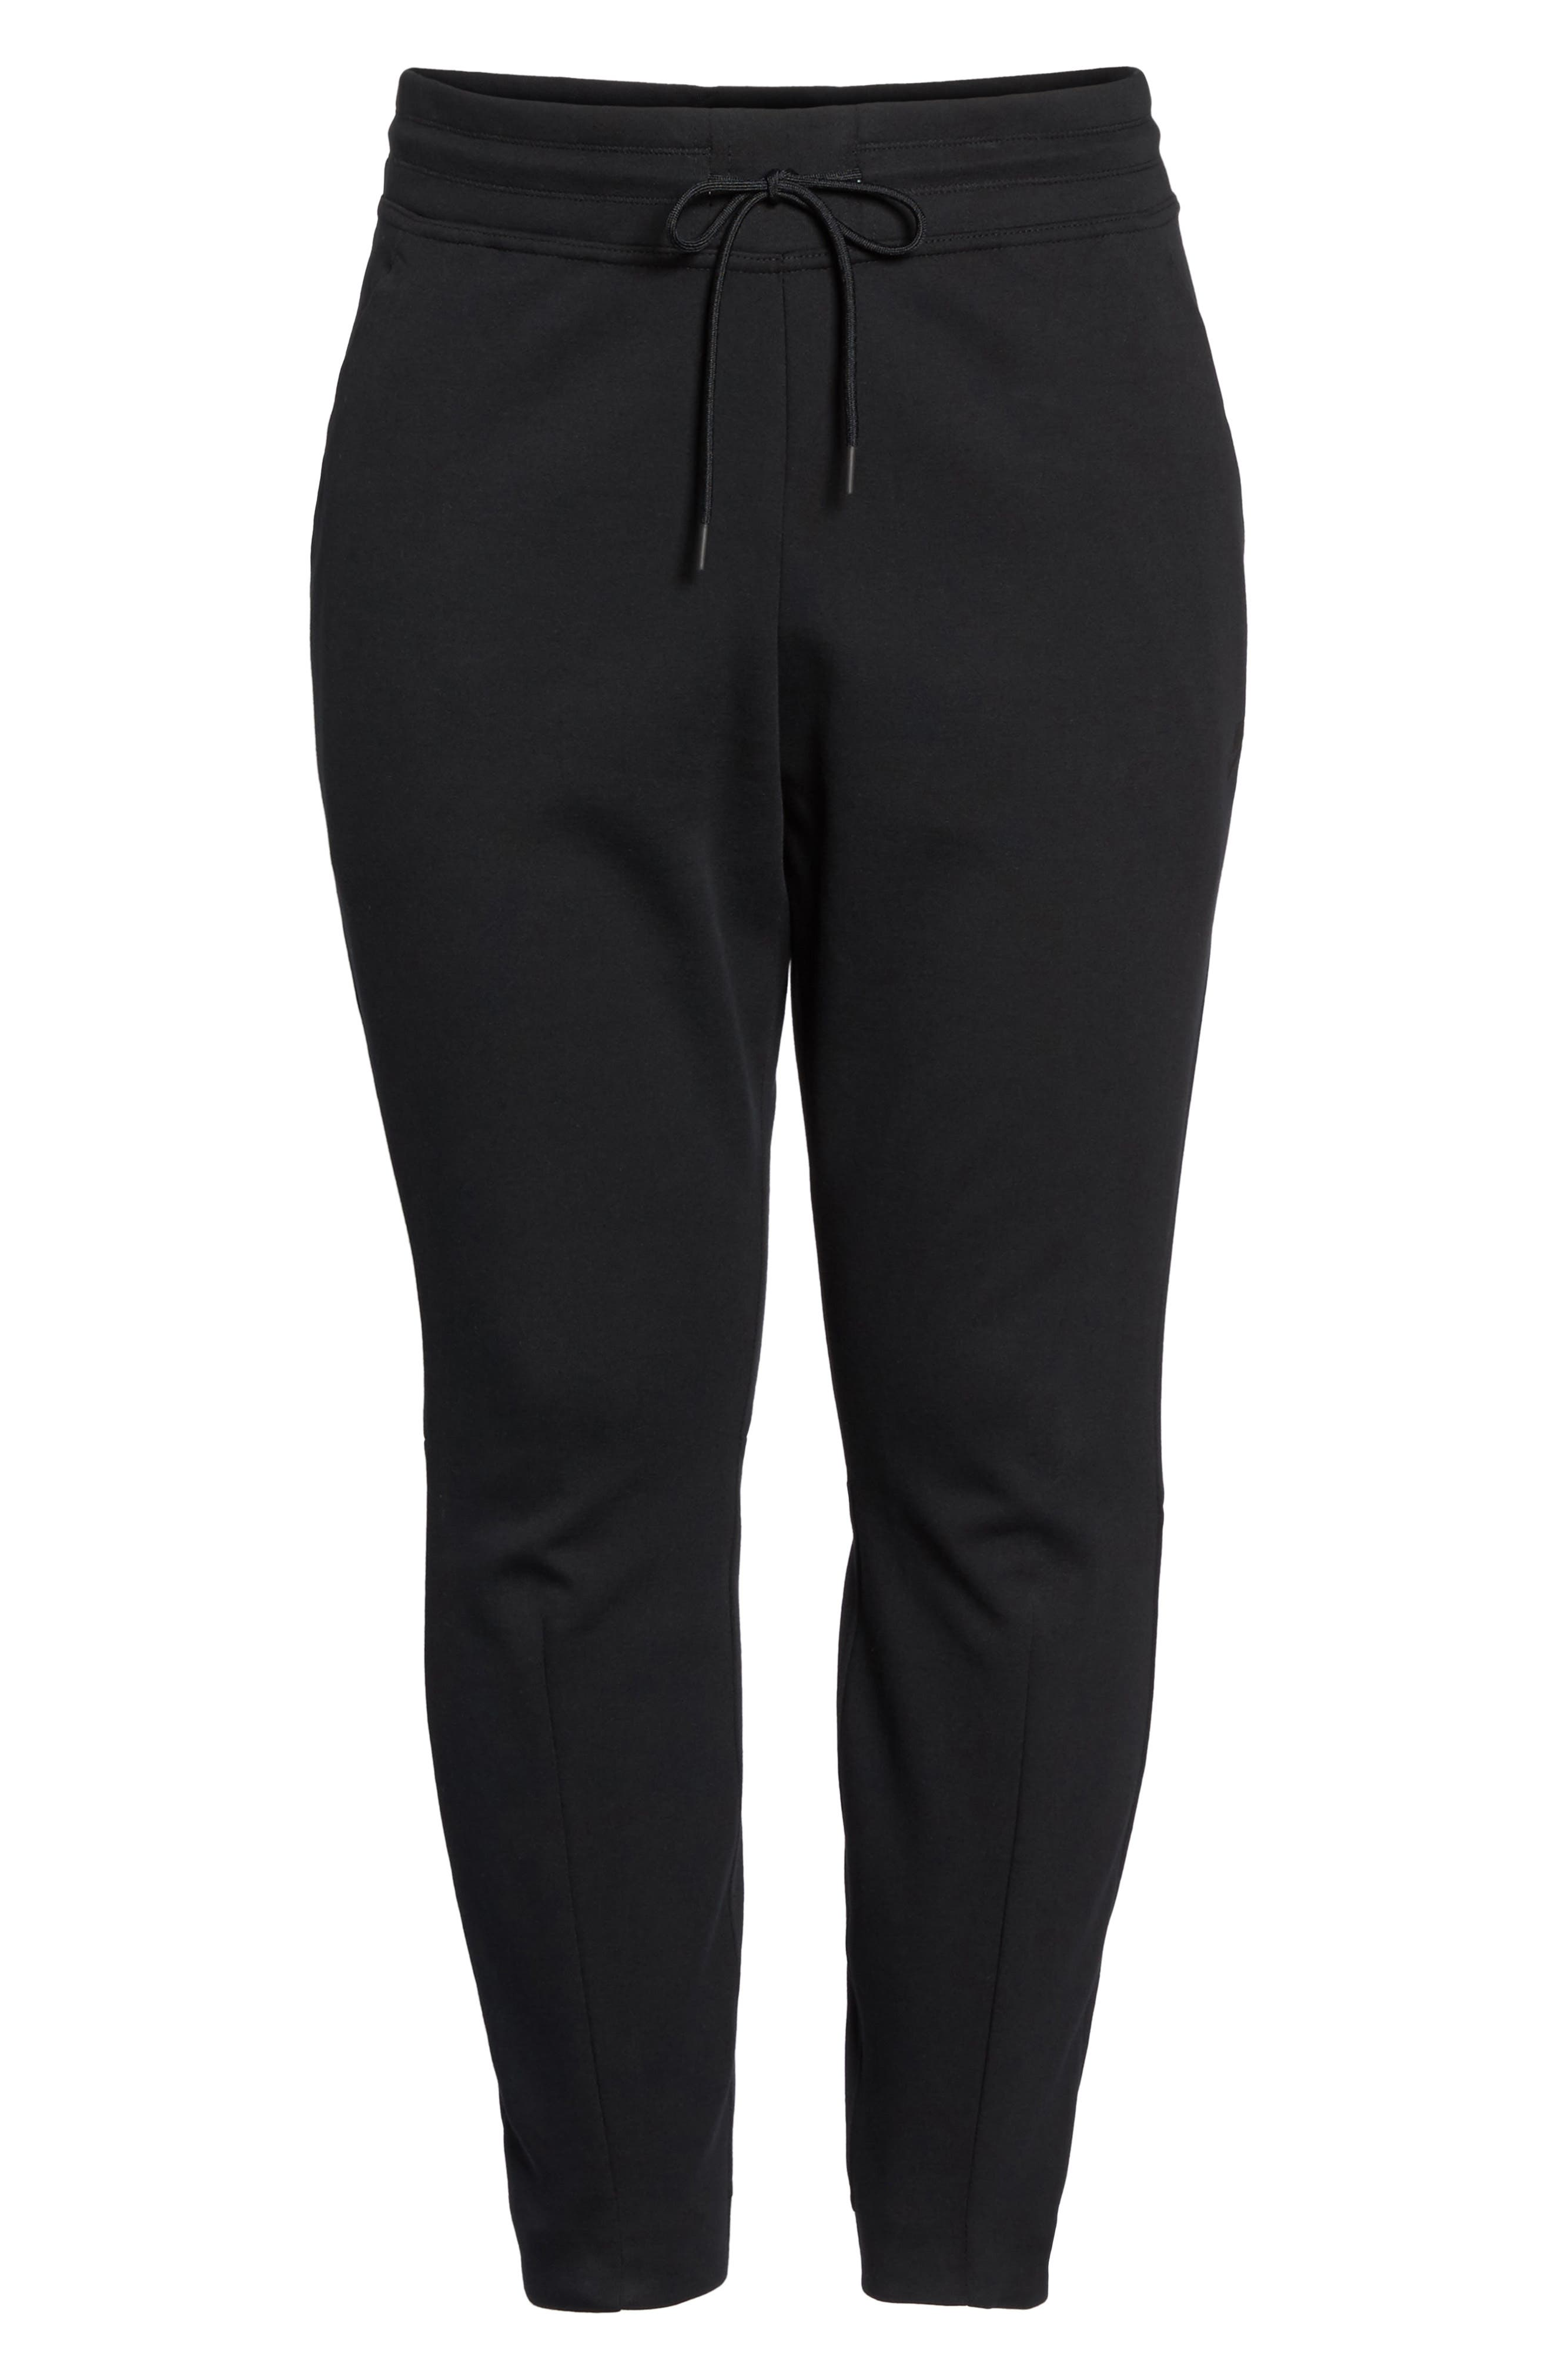 Tech Fleece Jogger Pants,                             Alternate thumbnail 6, color,                             010